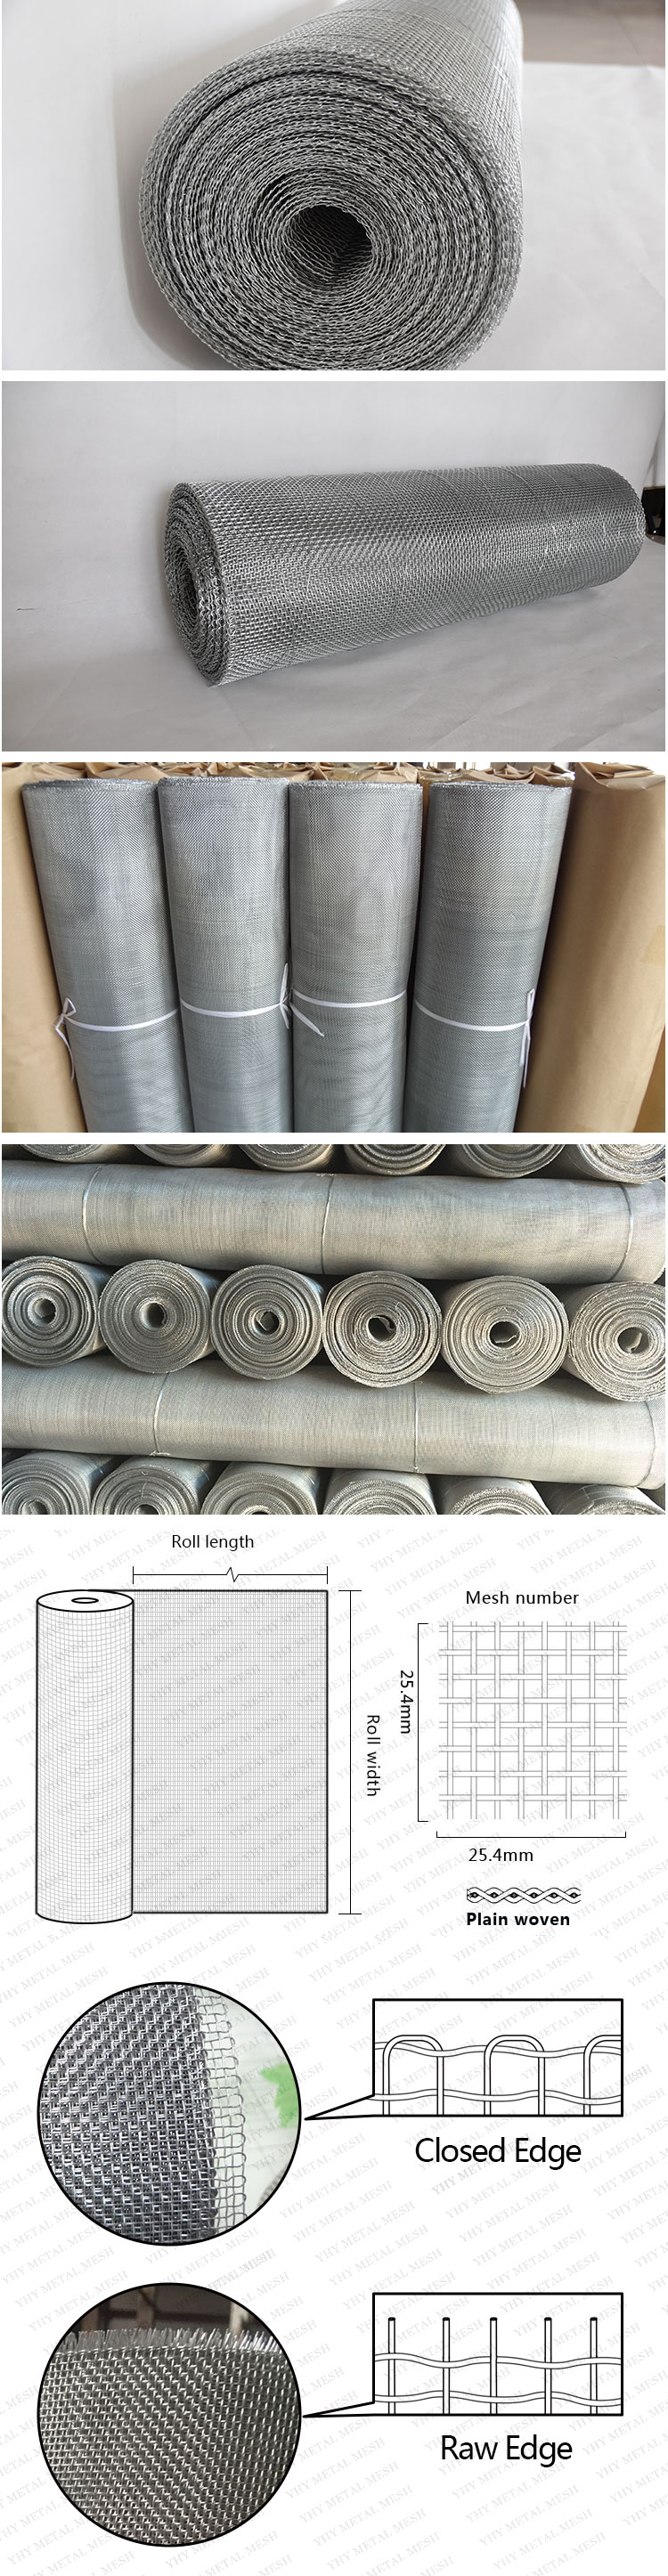 60mesh-2meshFiltering Hot Dipped Galvanized or Electro Galvanized ...